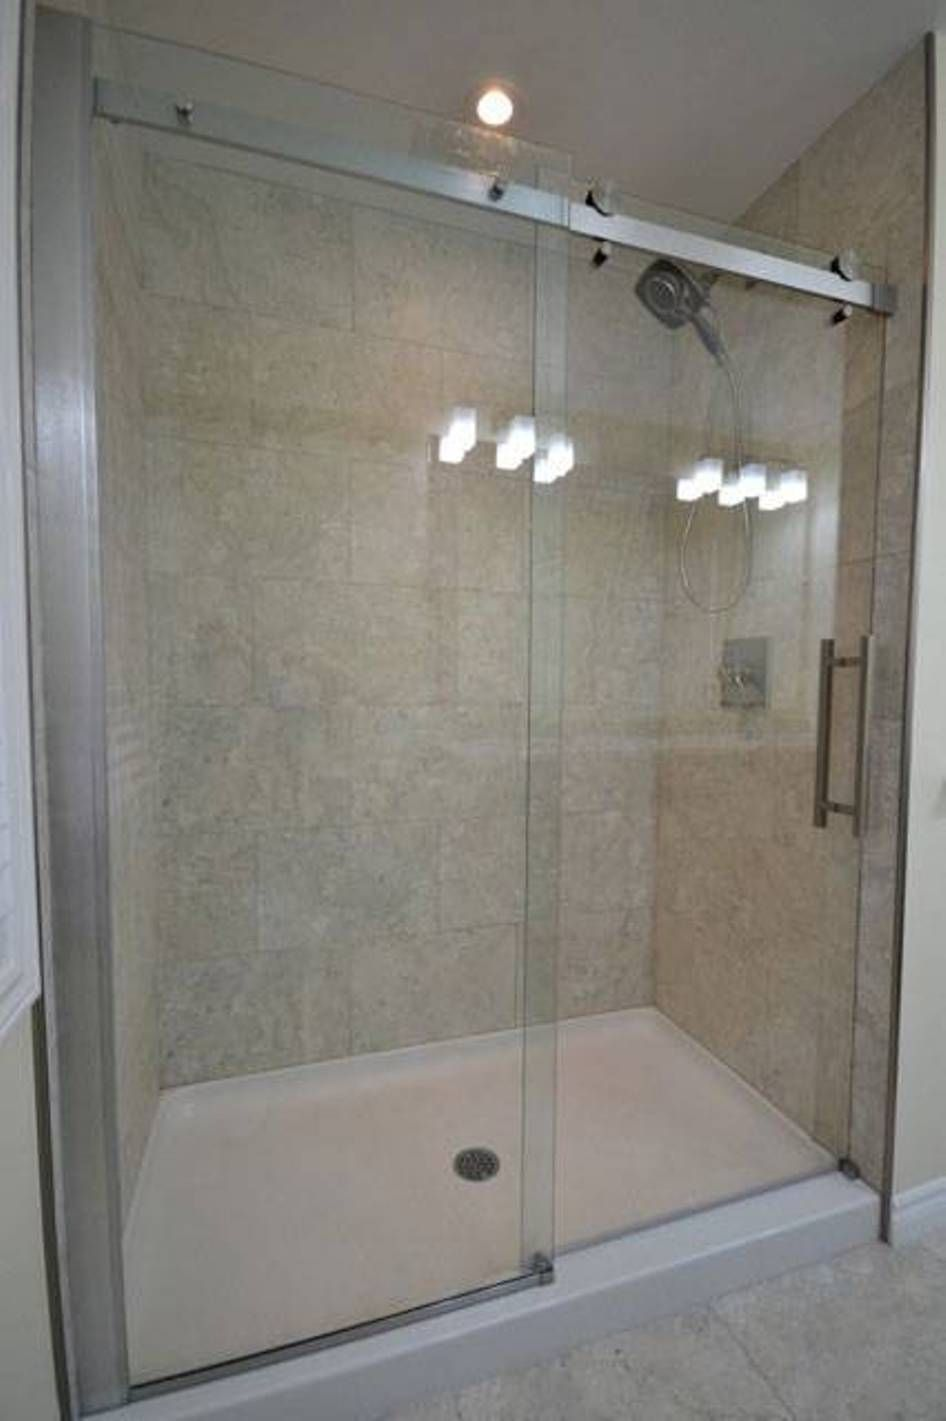 shower pan with sliding glass door in bathroom | Bathroom Remodel ...